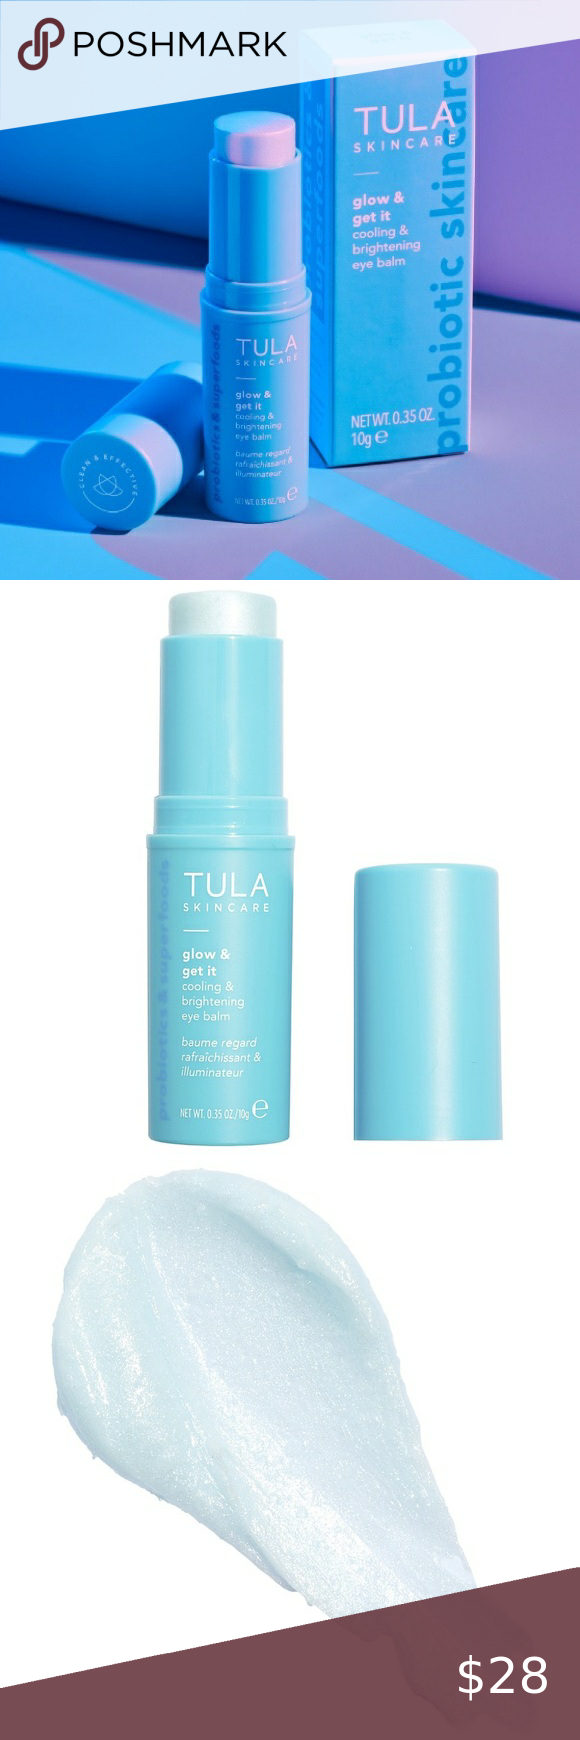 Tula Glow Get It Cooling Brightening Eye Balm In 2020 The